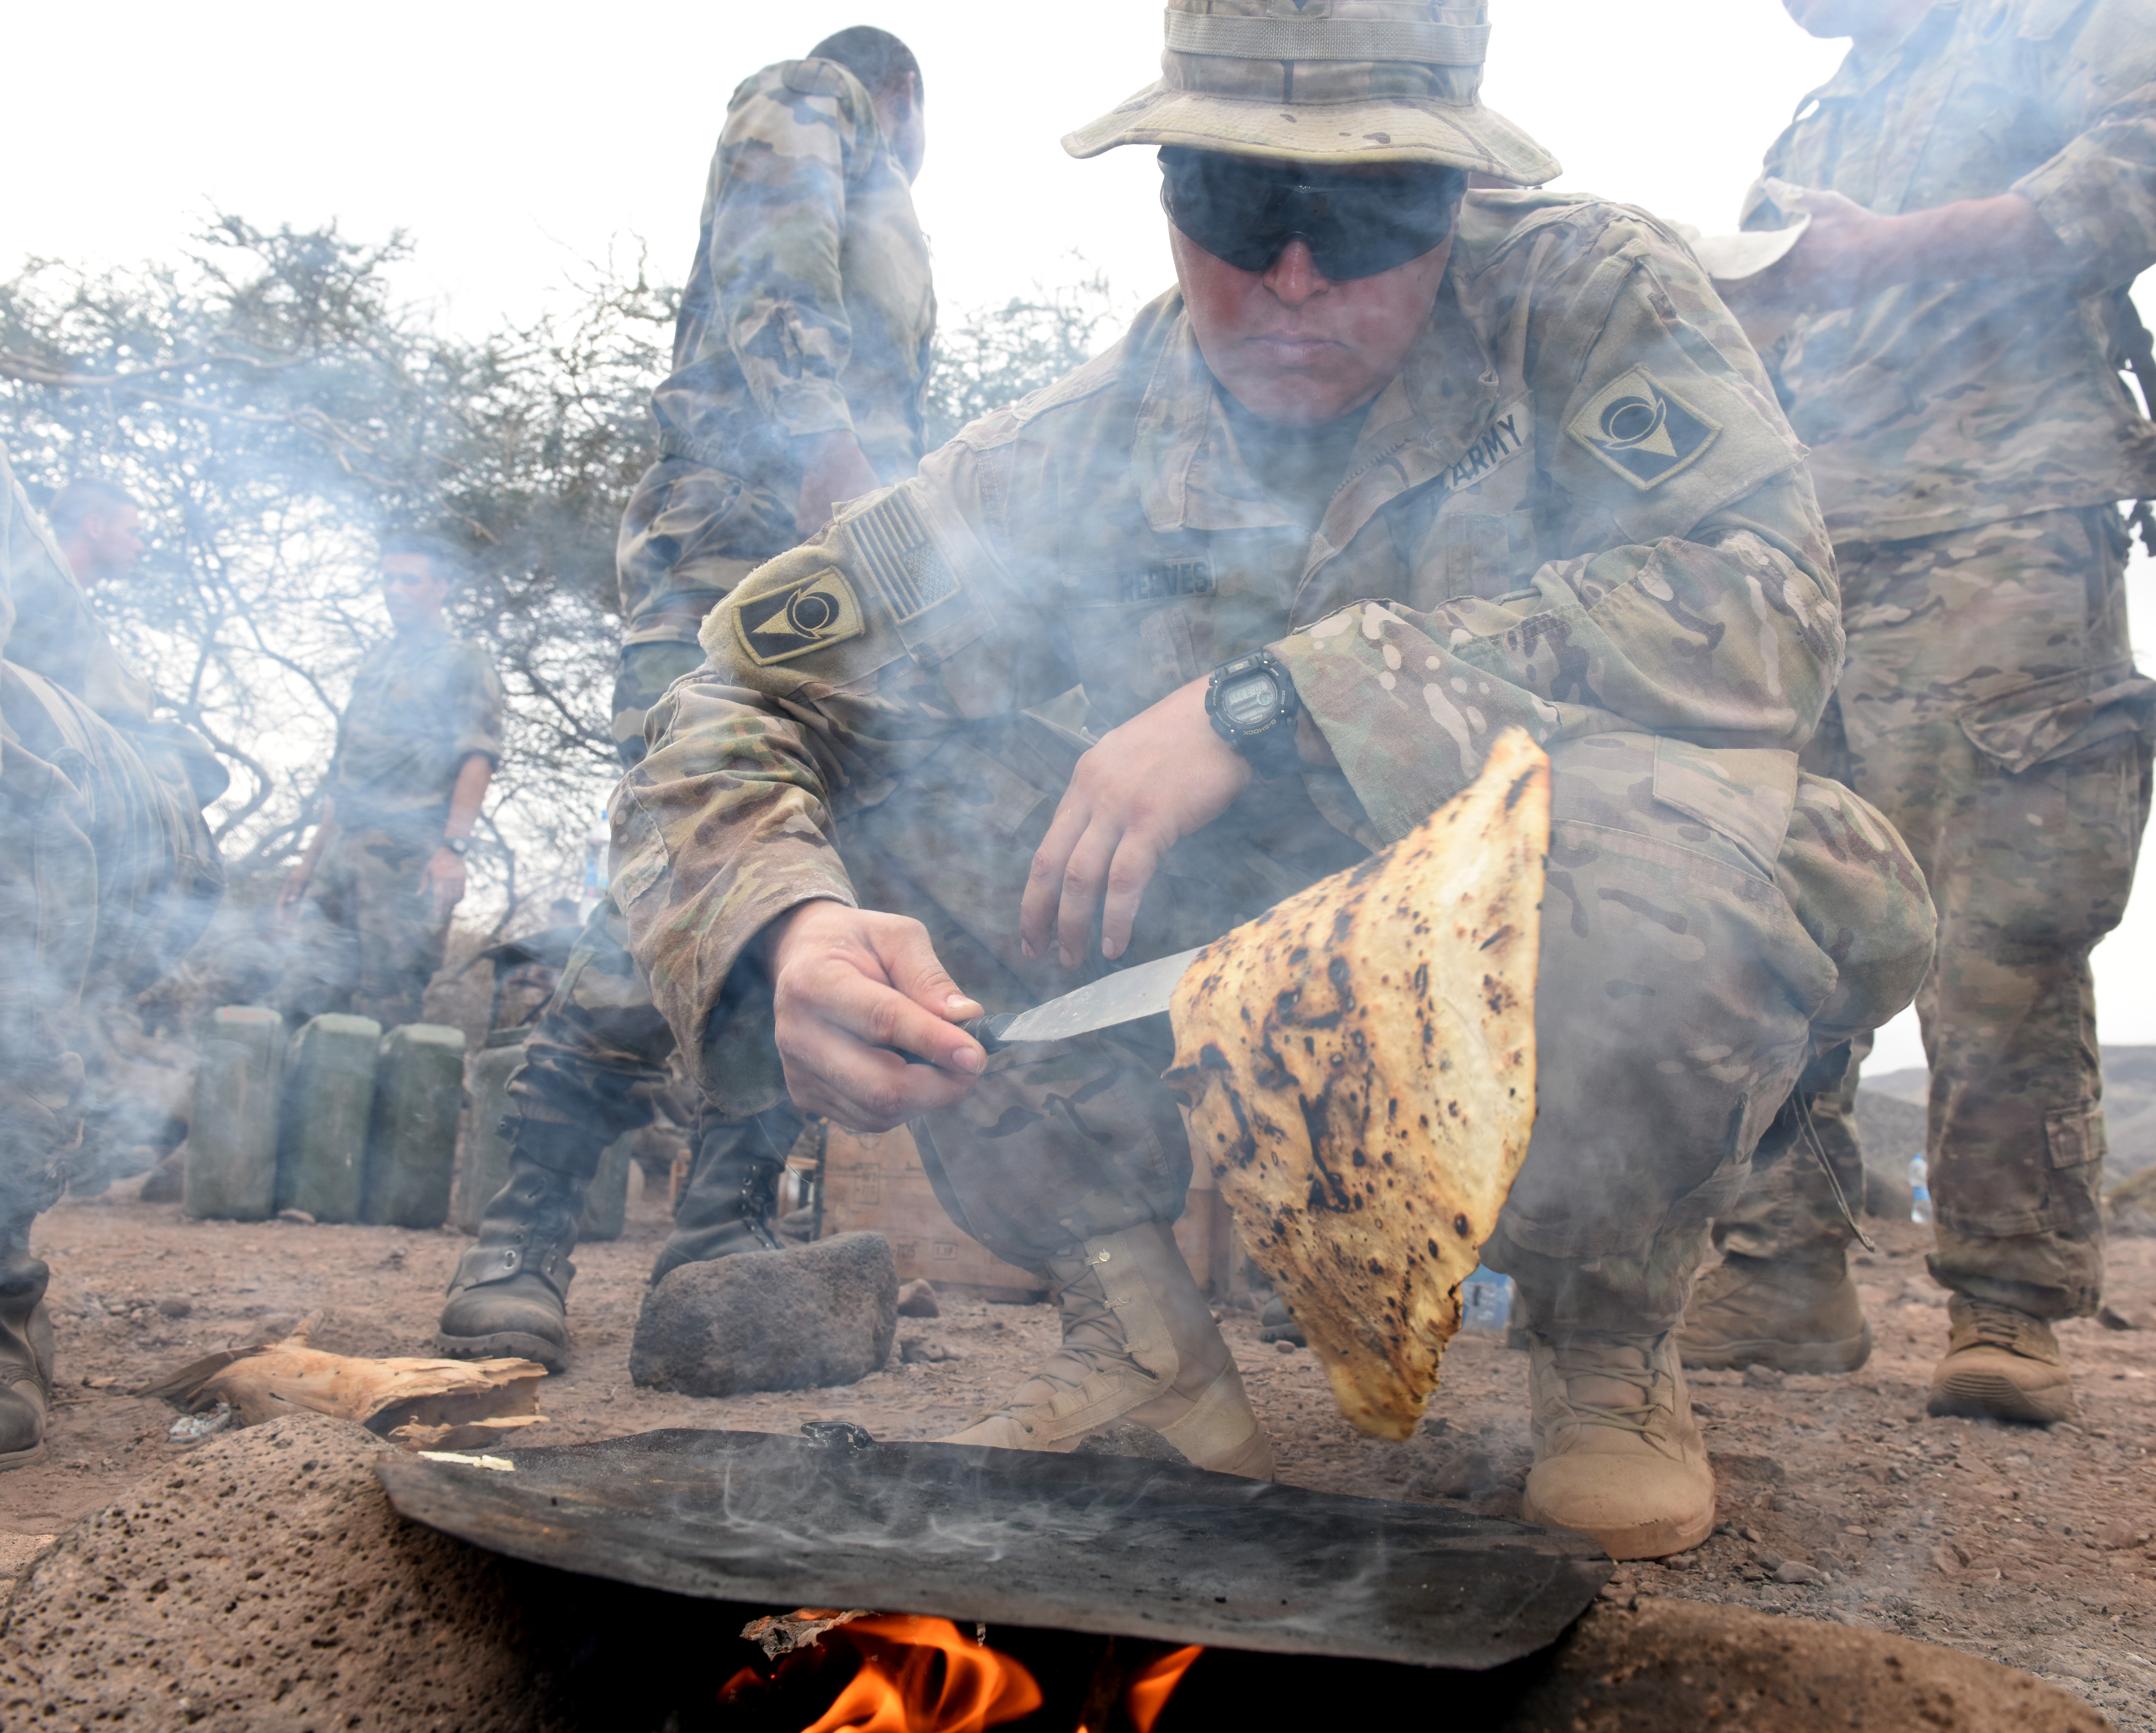 U.S. Army Spc. Christopher Reeves, 2-124 Infantry Battalion mechanic, grills flatbread during a French Desert Survival Course near Arta Beach, Djibouti, Jan. 13, 2016.  Using techniques that can be used in survival situations, students worked together to make a meal for the whole group. (U.S. Air Force photo by Staff Sgt. Kate Thornton)